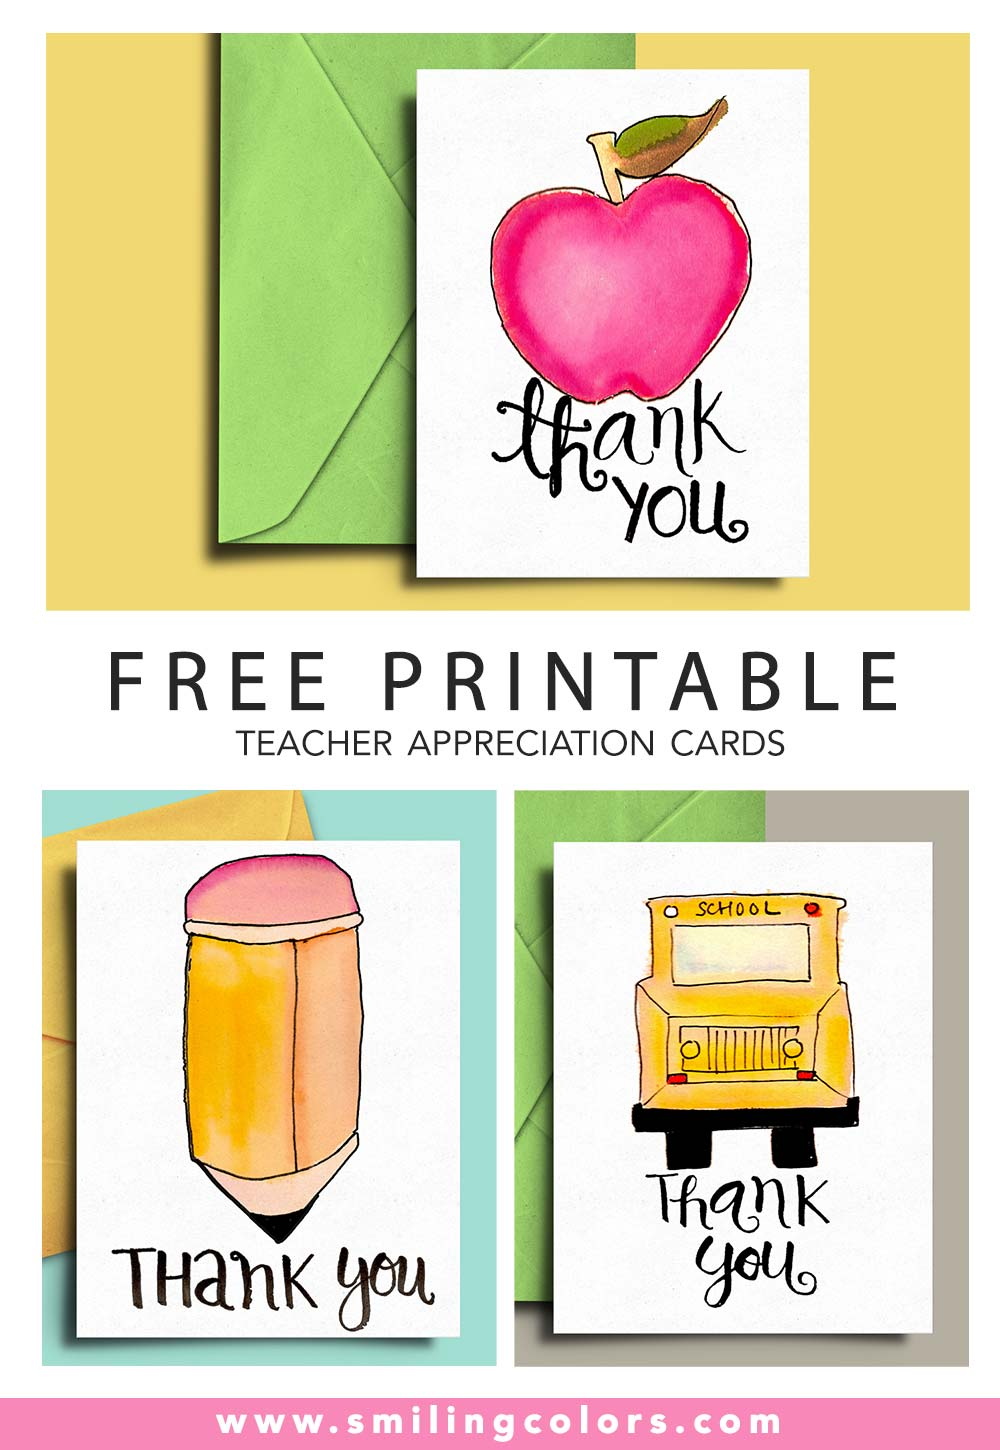 Thank you card for Teacher and School Bus Driver with FREE Printables